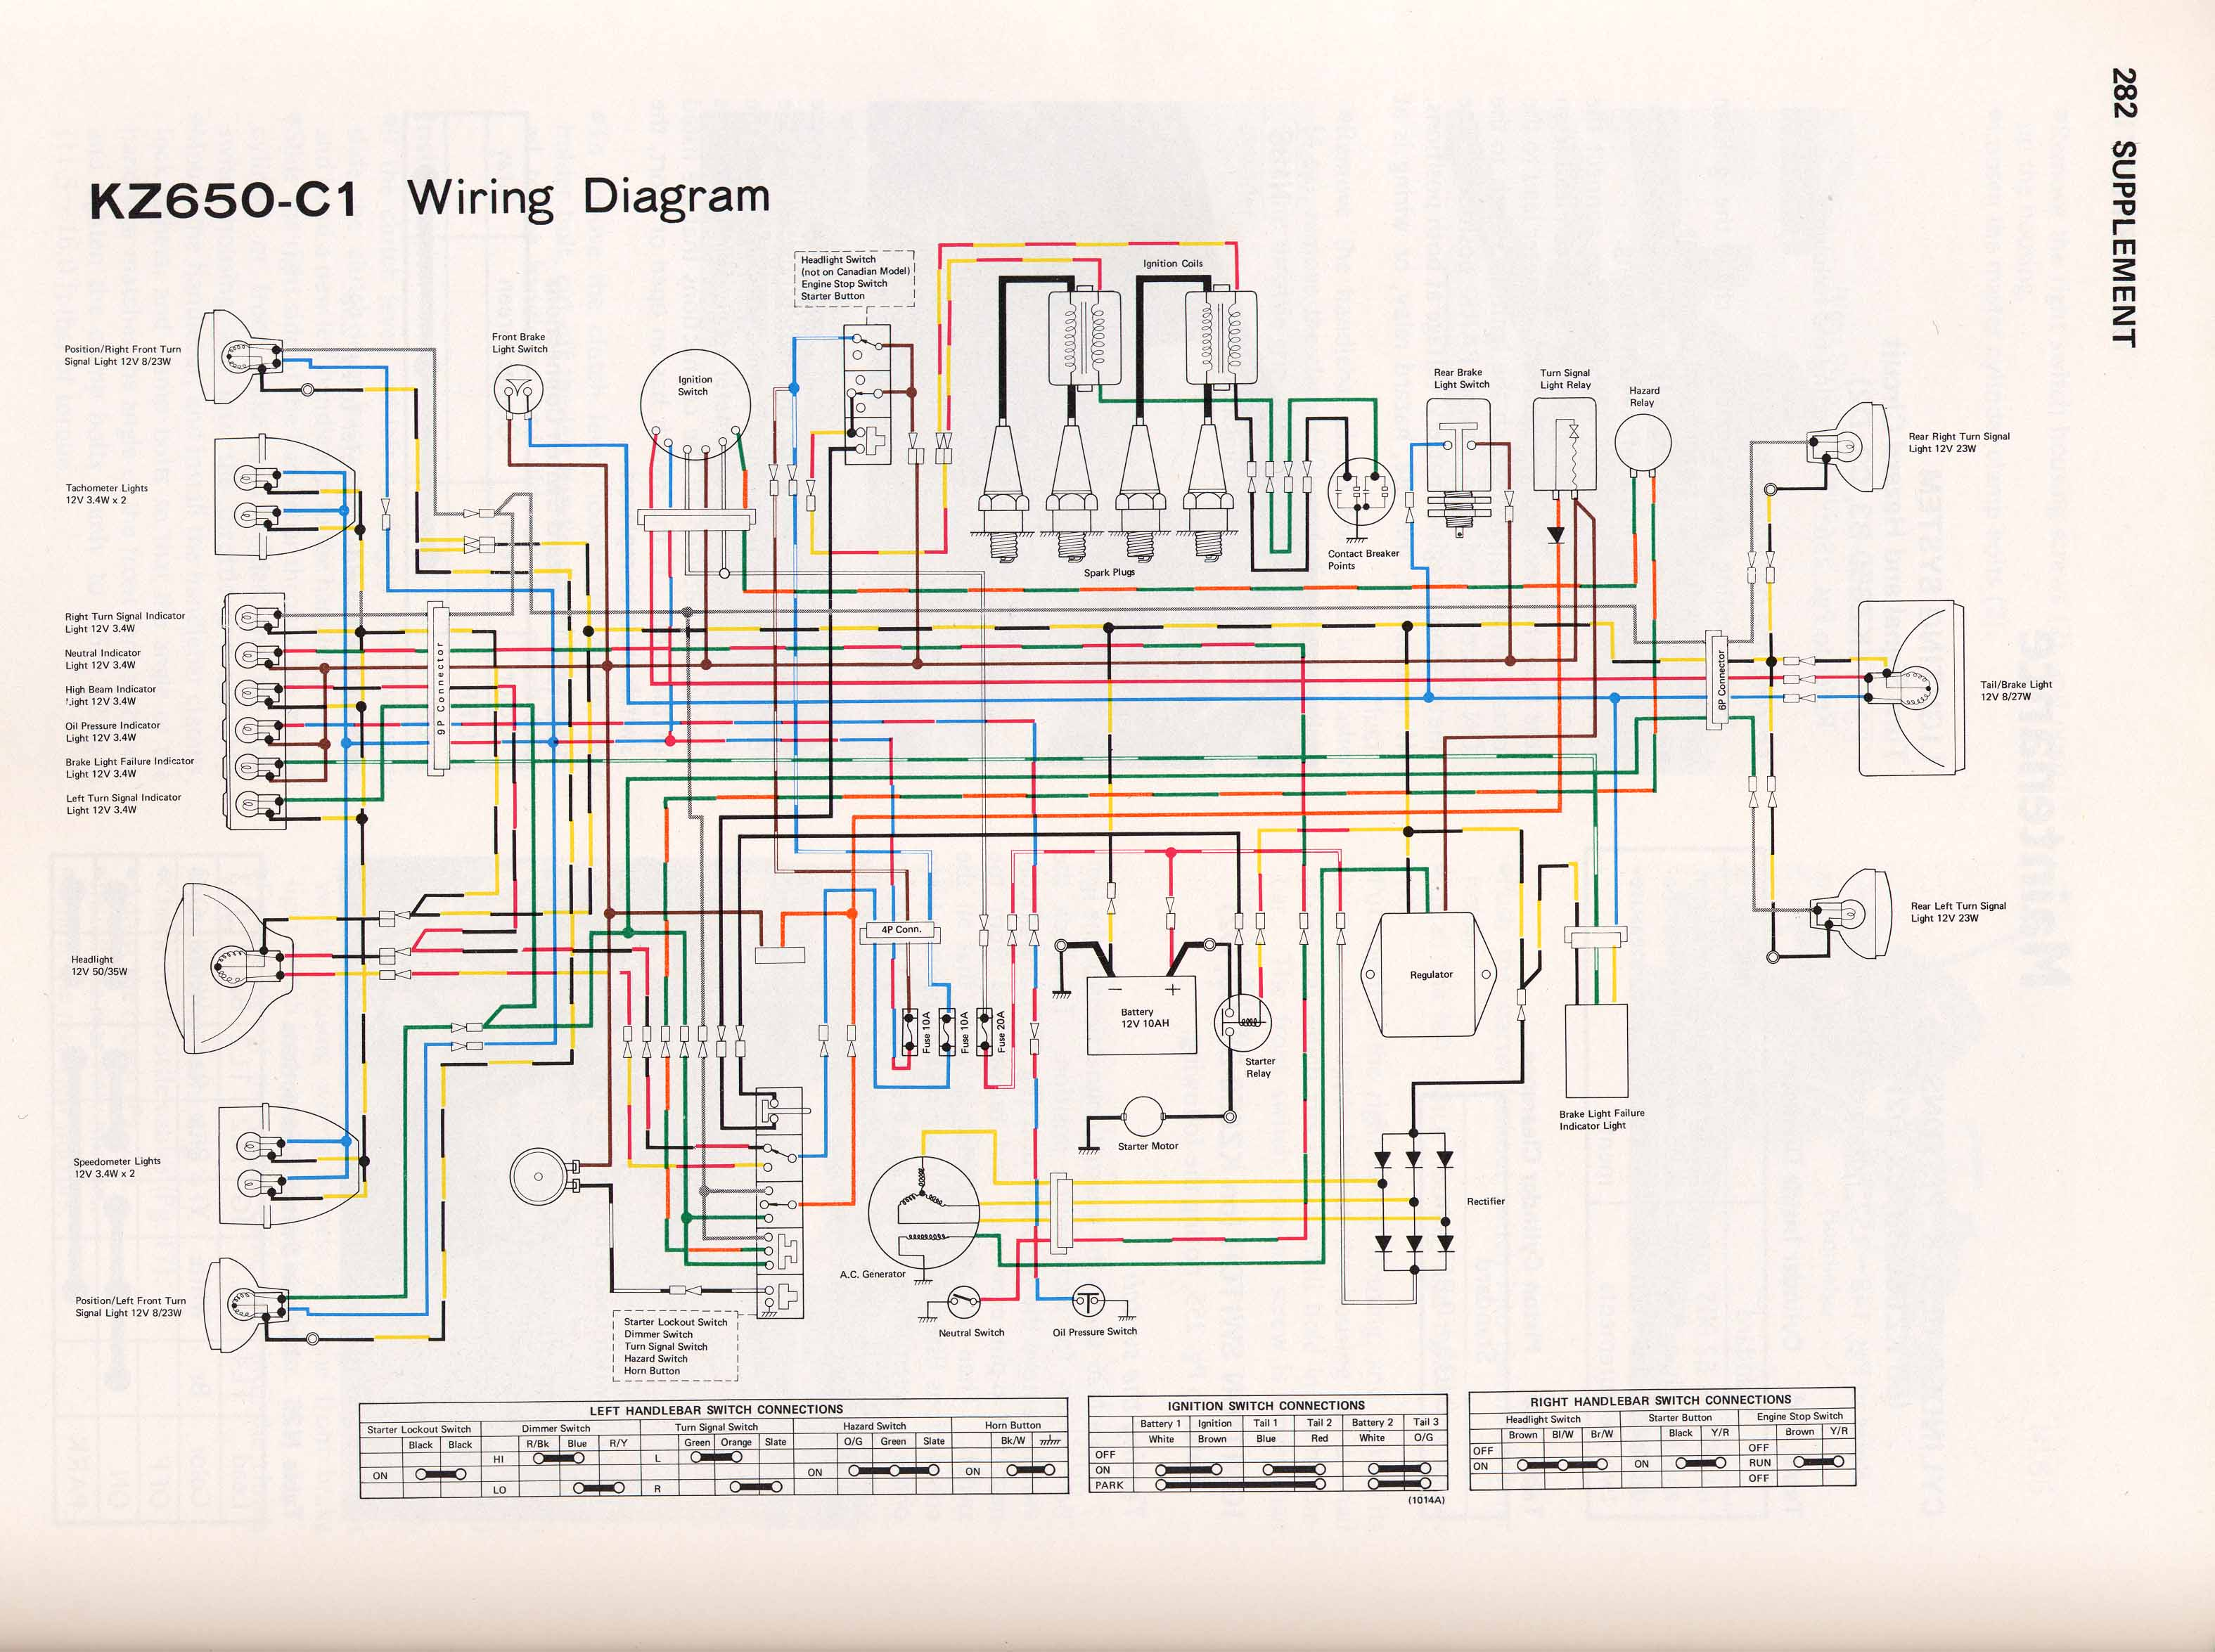 KZ650 C1 kawasaki kz650 wiring diagram vulcan 1500 wiring diagram \u2022 free 1980 kawasaki kz440 wiring diagram at readyjetset.co